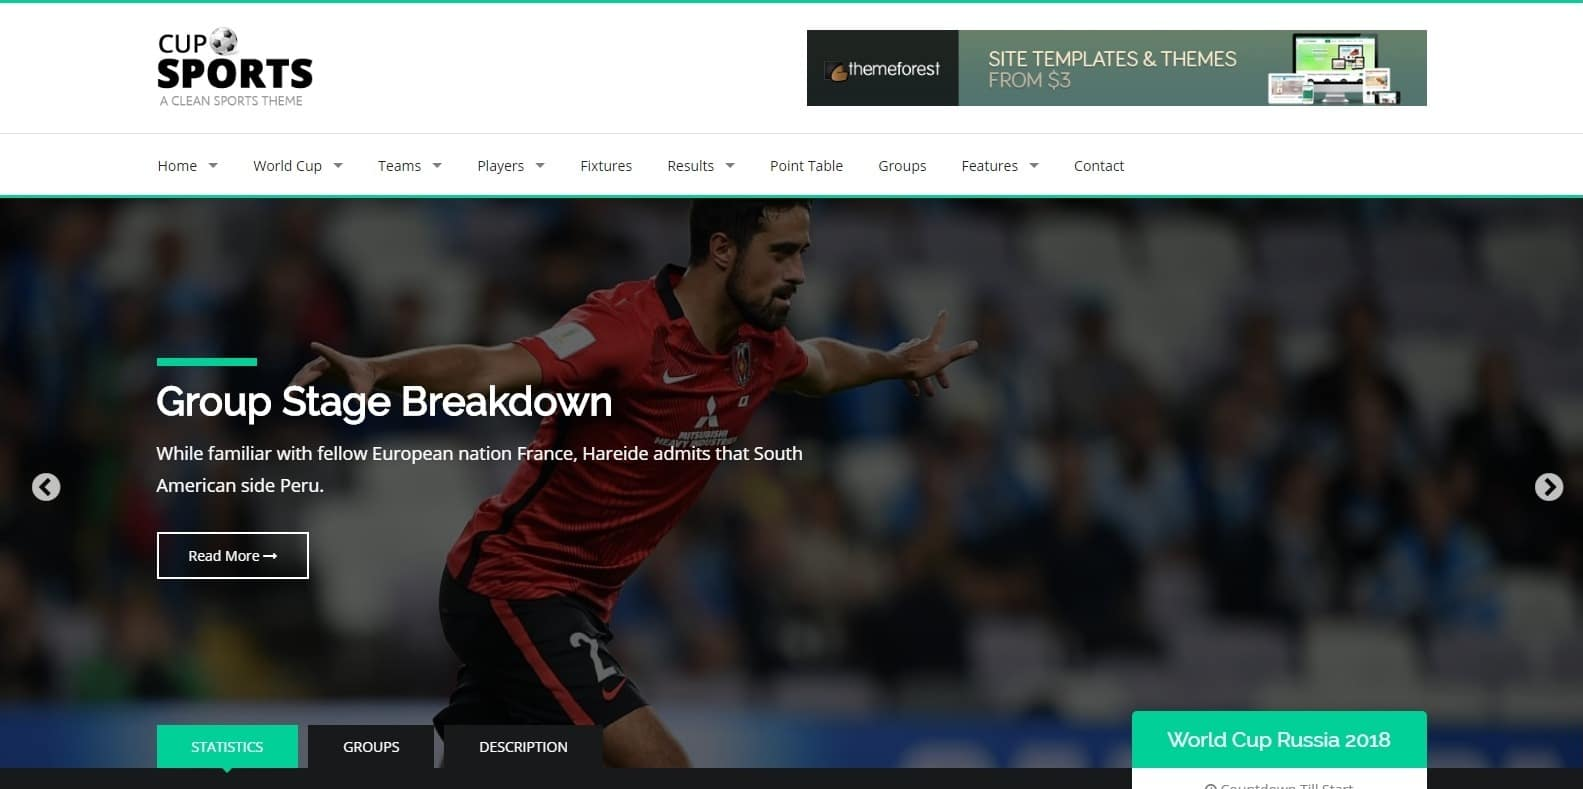 sportscup-sports-website-template